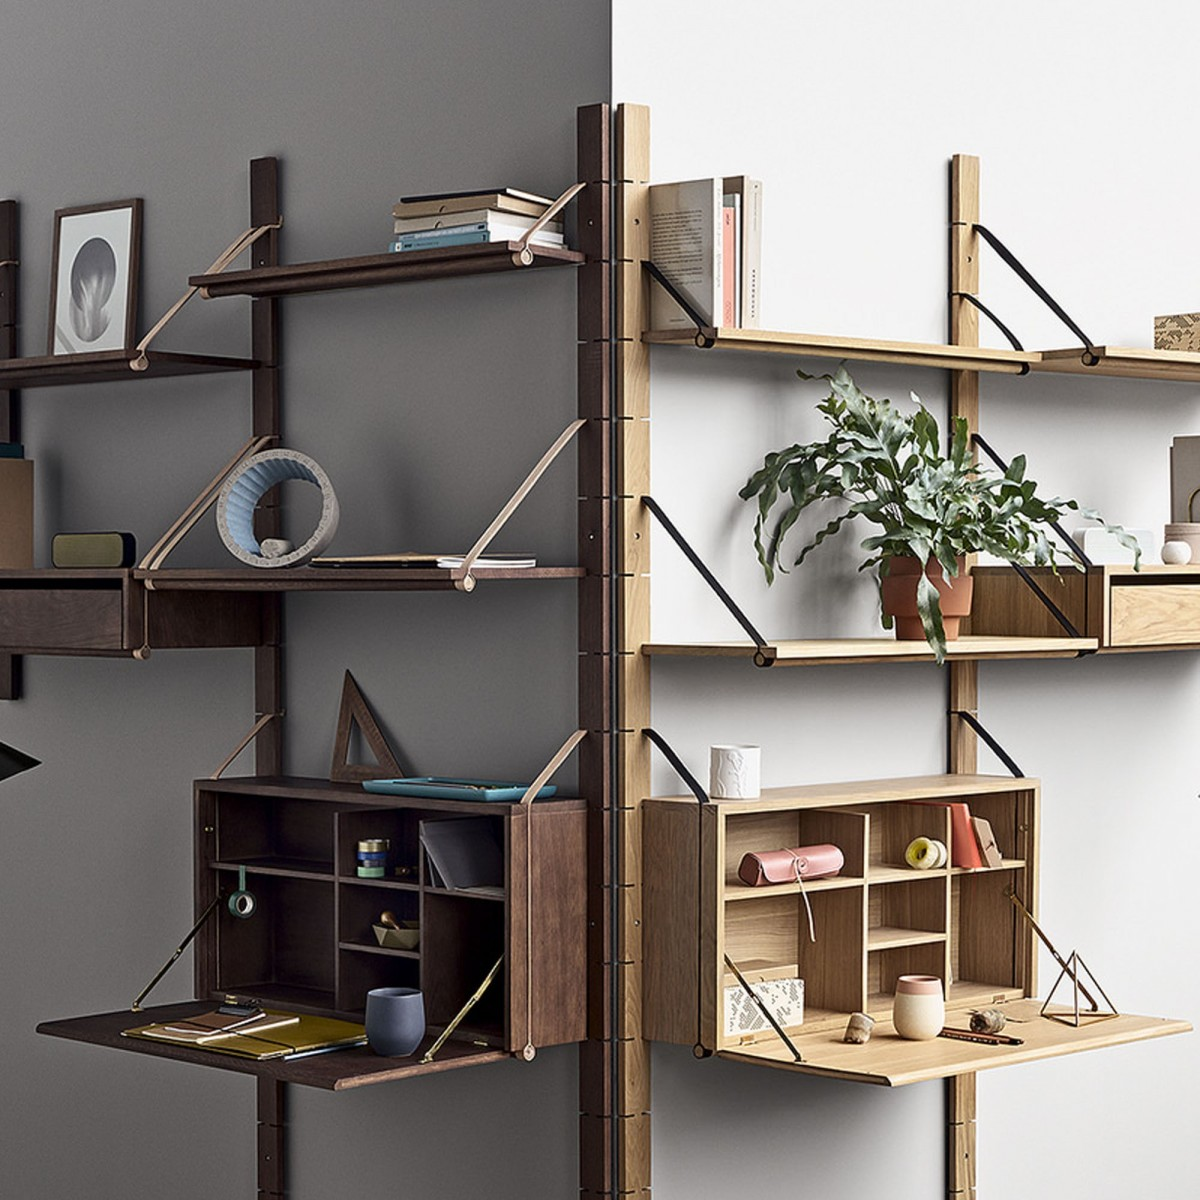 The Wall Side Panels Strap System By Bolia